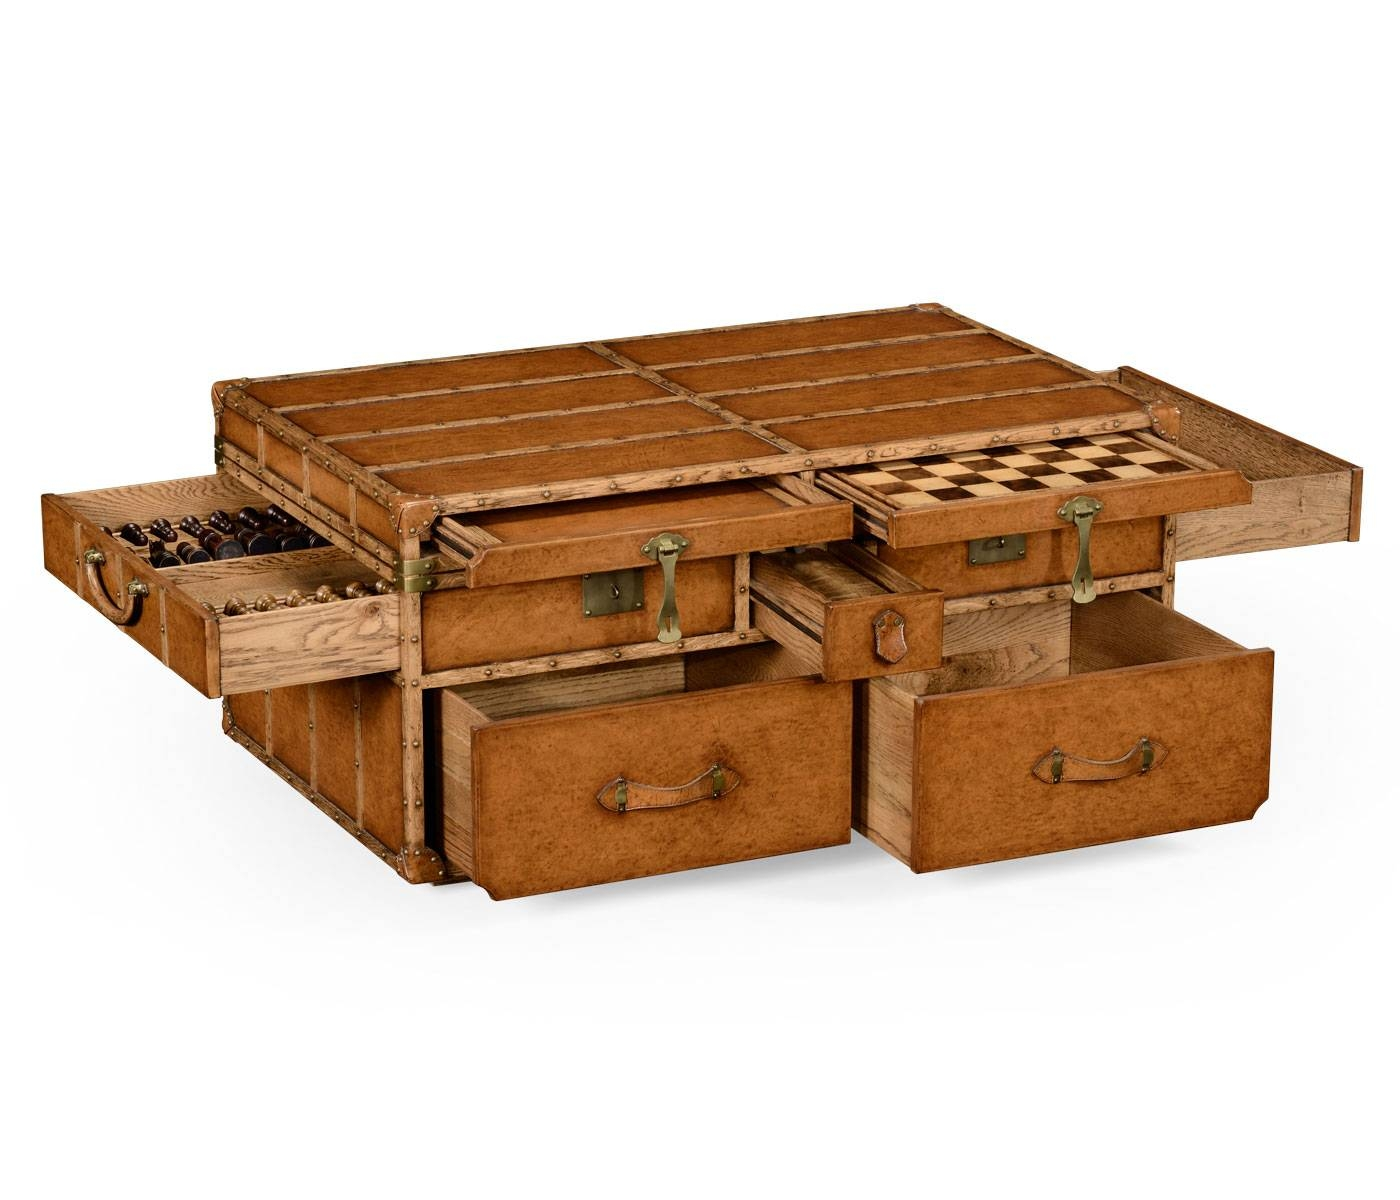 Storage Wood Trunk Coffee Table Wooden Trunks Coffee Tables Chest within Square Chest Coffee Tables (Image 24 of 30)